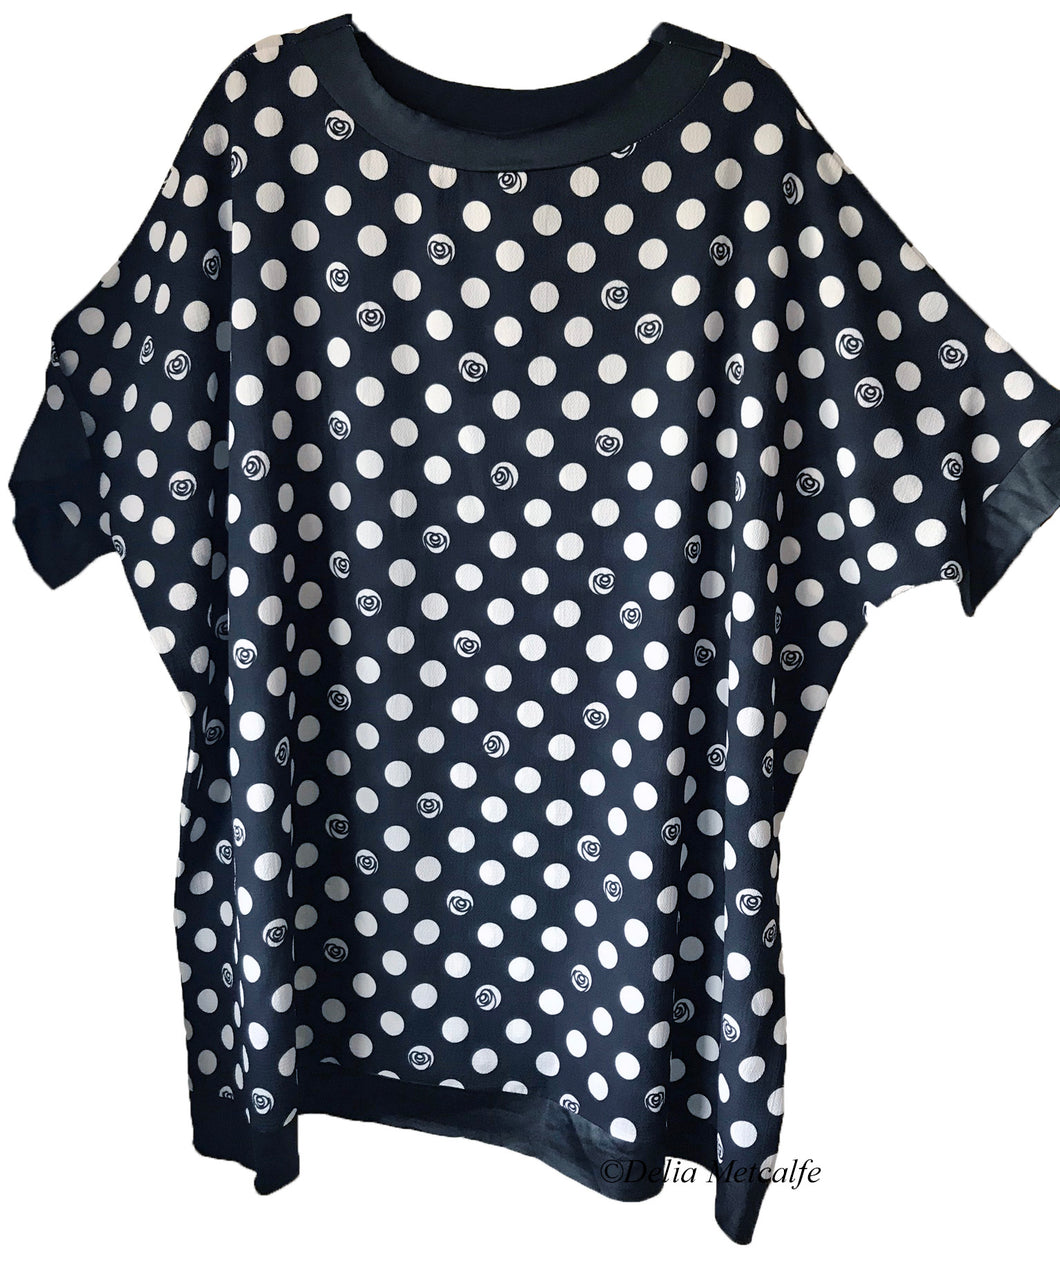 Spot Rose Patterned Top